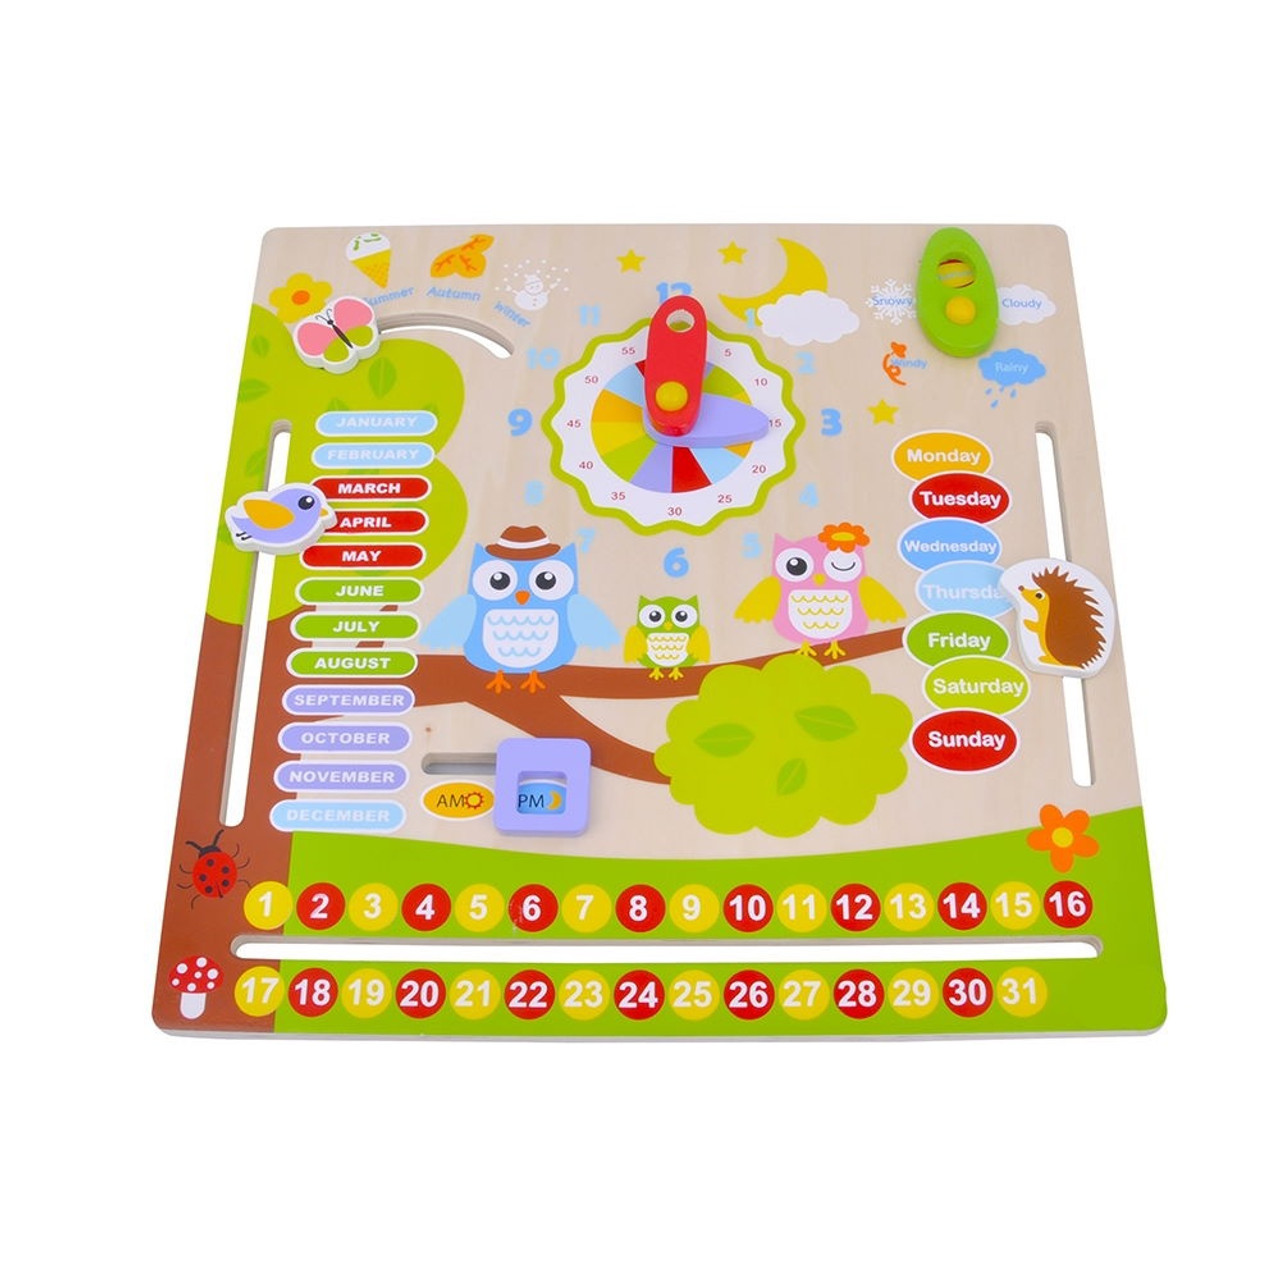 Toyslink Owl Calendar at Baby Barn Discounts This calendar has a lovely painted image of animals in a tree.